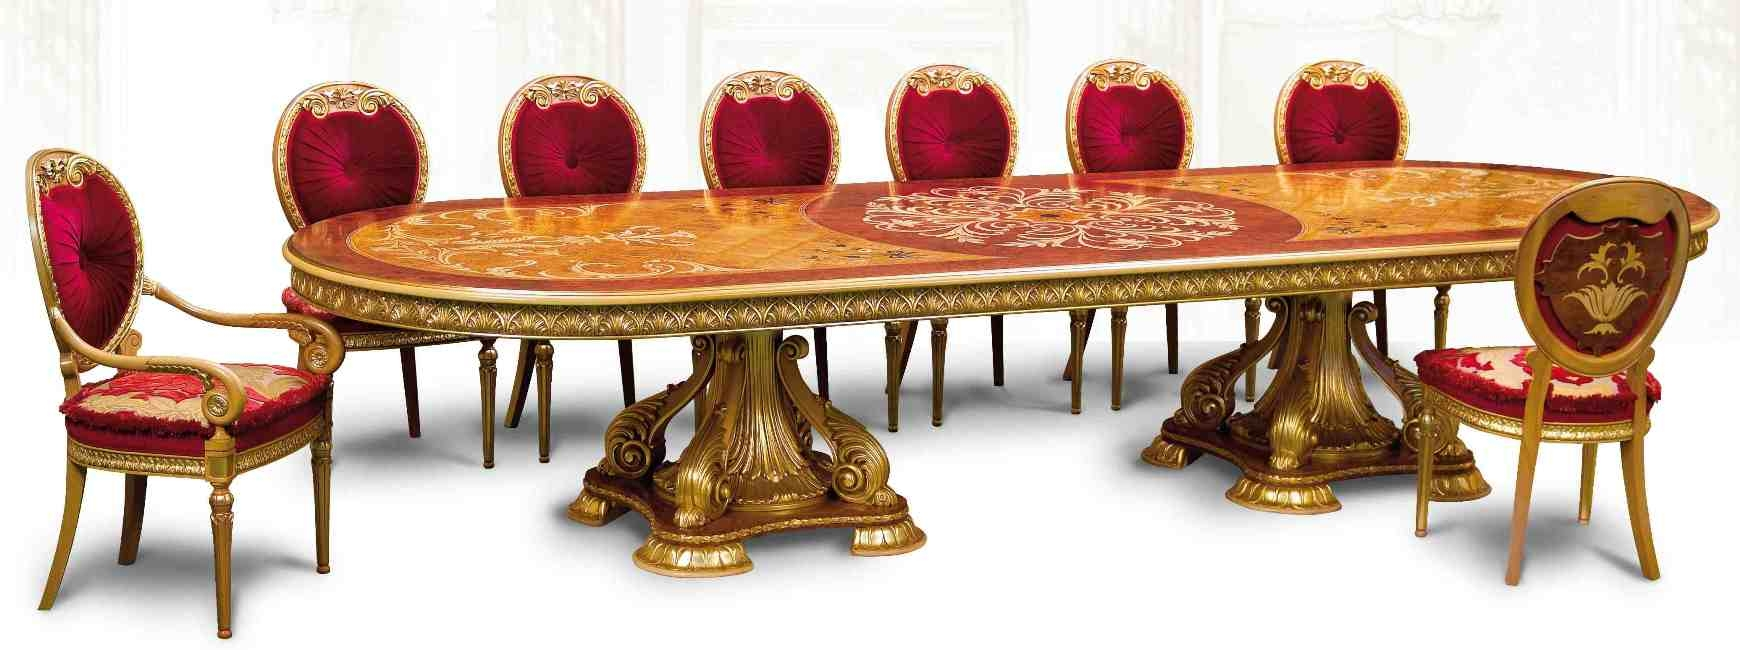 Luxury handmade furniture. Empire Style dining table